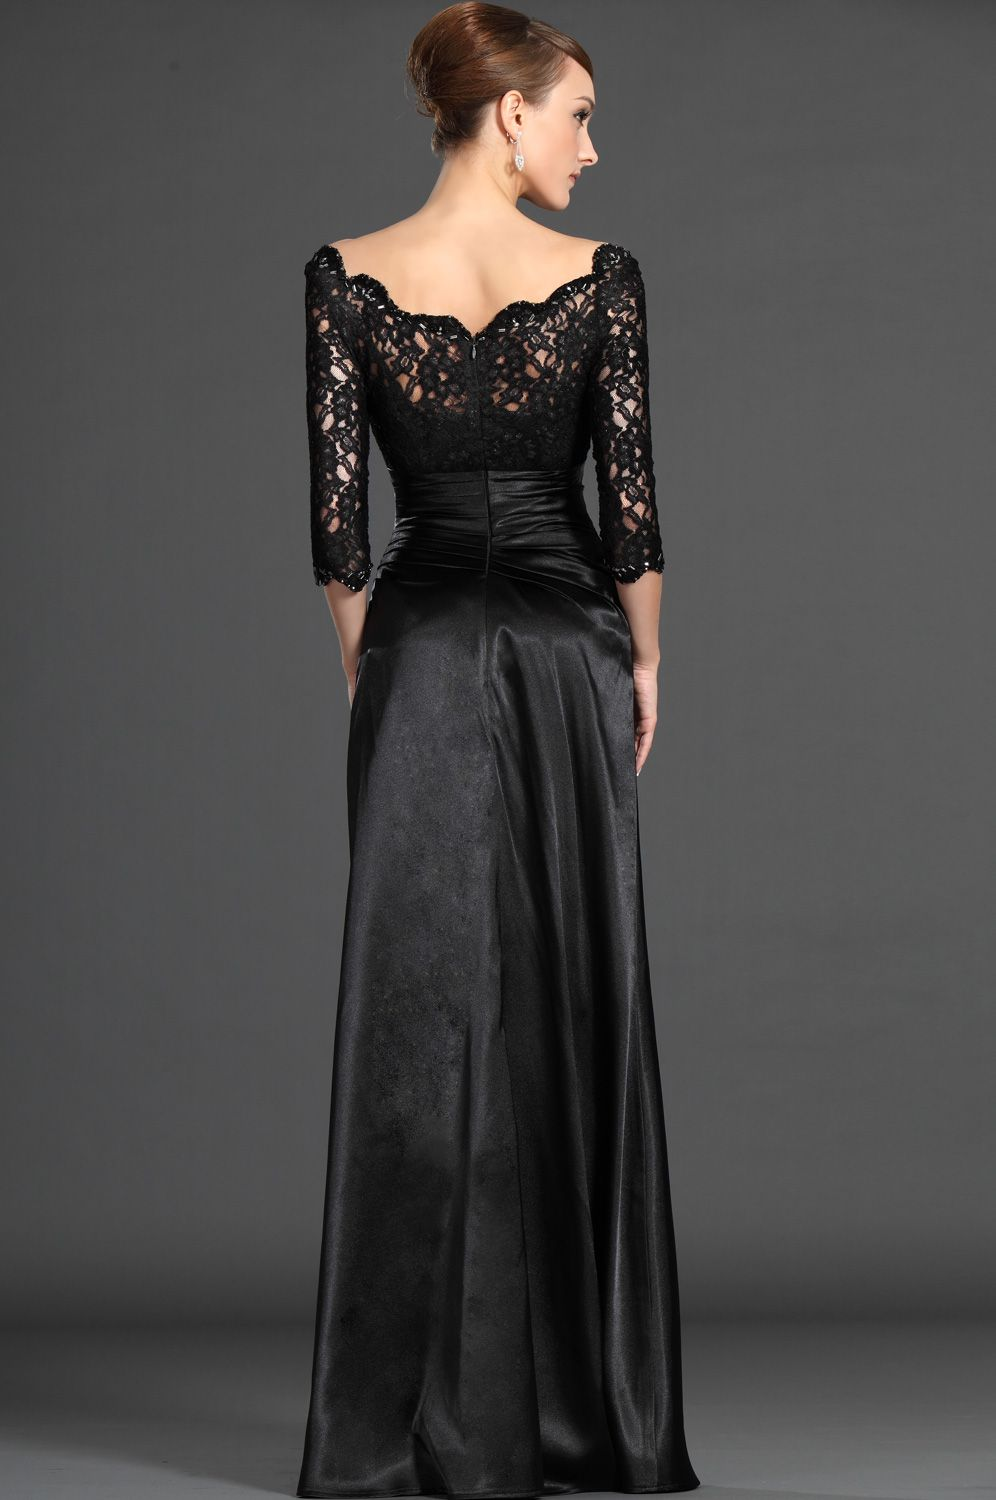 Edressit stylish black lace sleeves mother of the bride dress